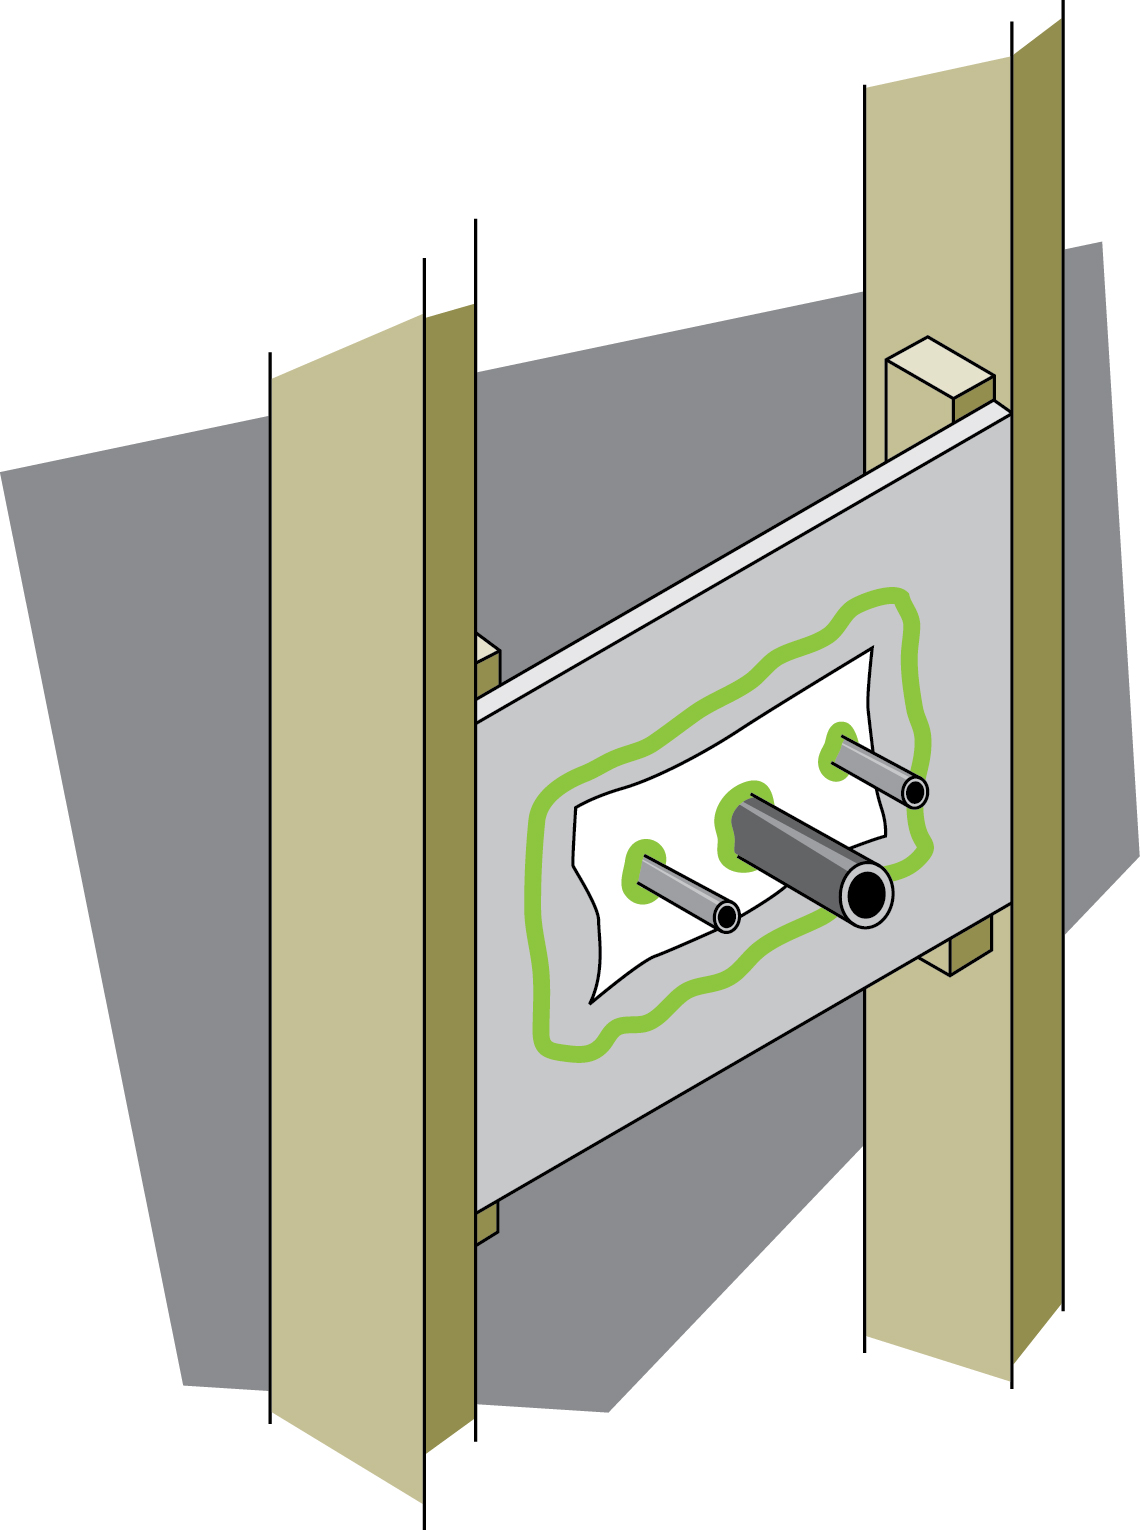 Keeping The Heat In Chapter 6 Basement Insulation Natural Exposed Wiring Ceiling Figure 16 Sealed Plumbing Penetrations